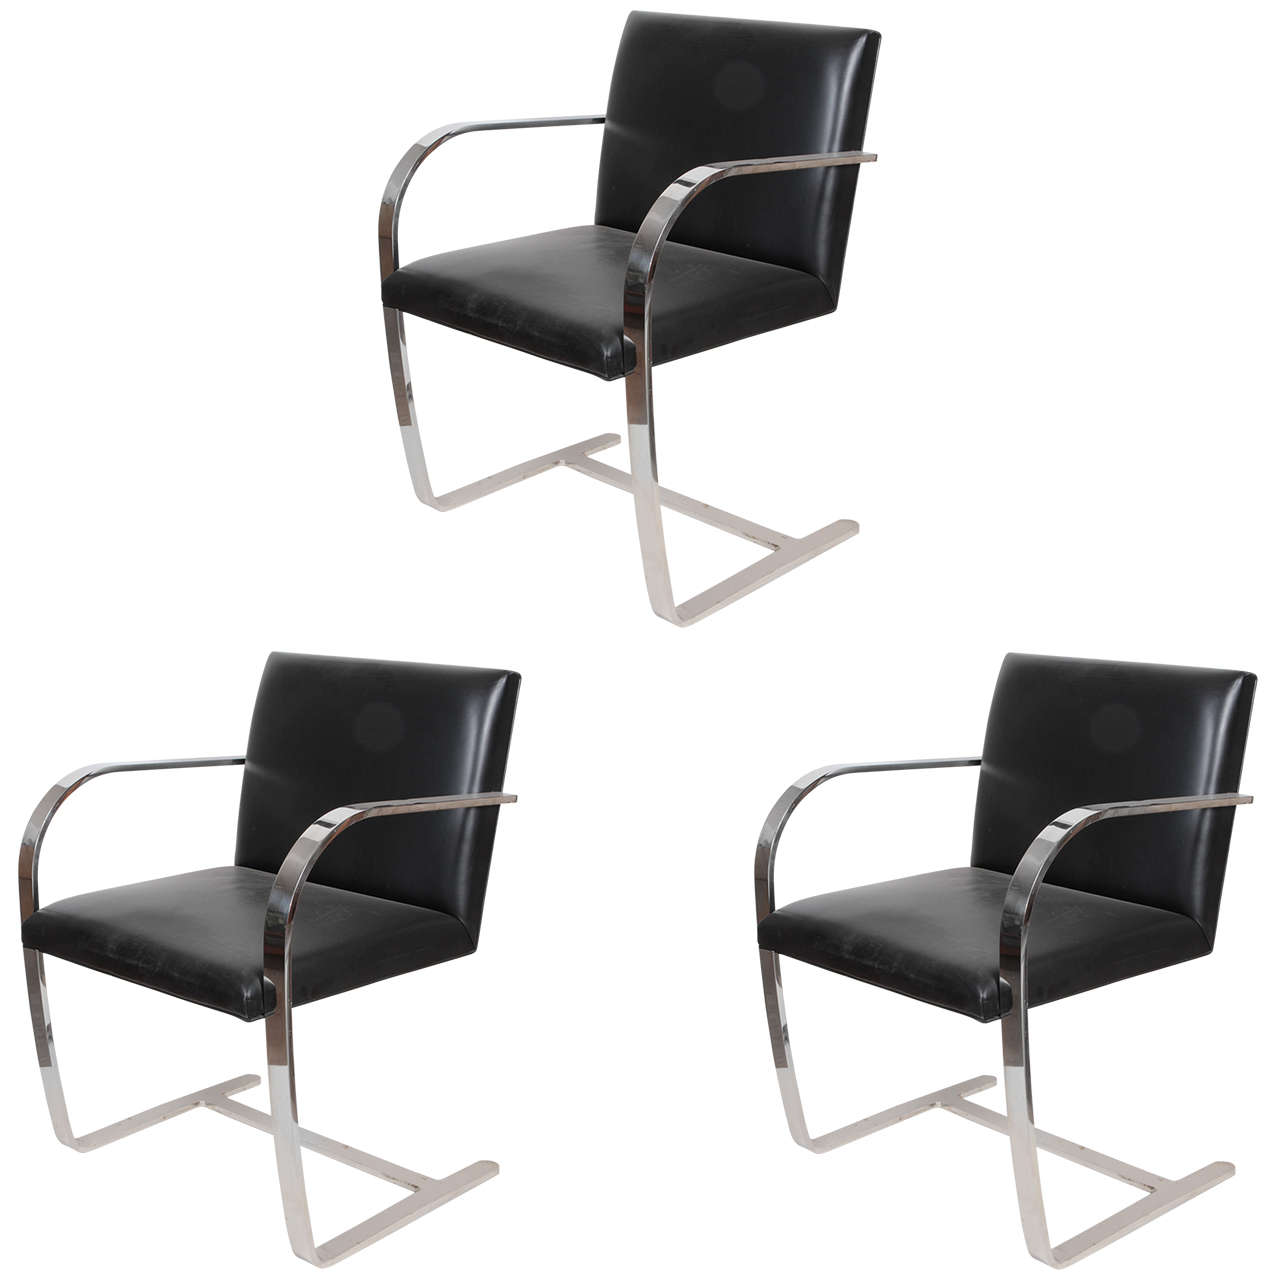 Awesome Mies Van Der Rohe Brno Chairs For Knoll 1 Photo Gallery